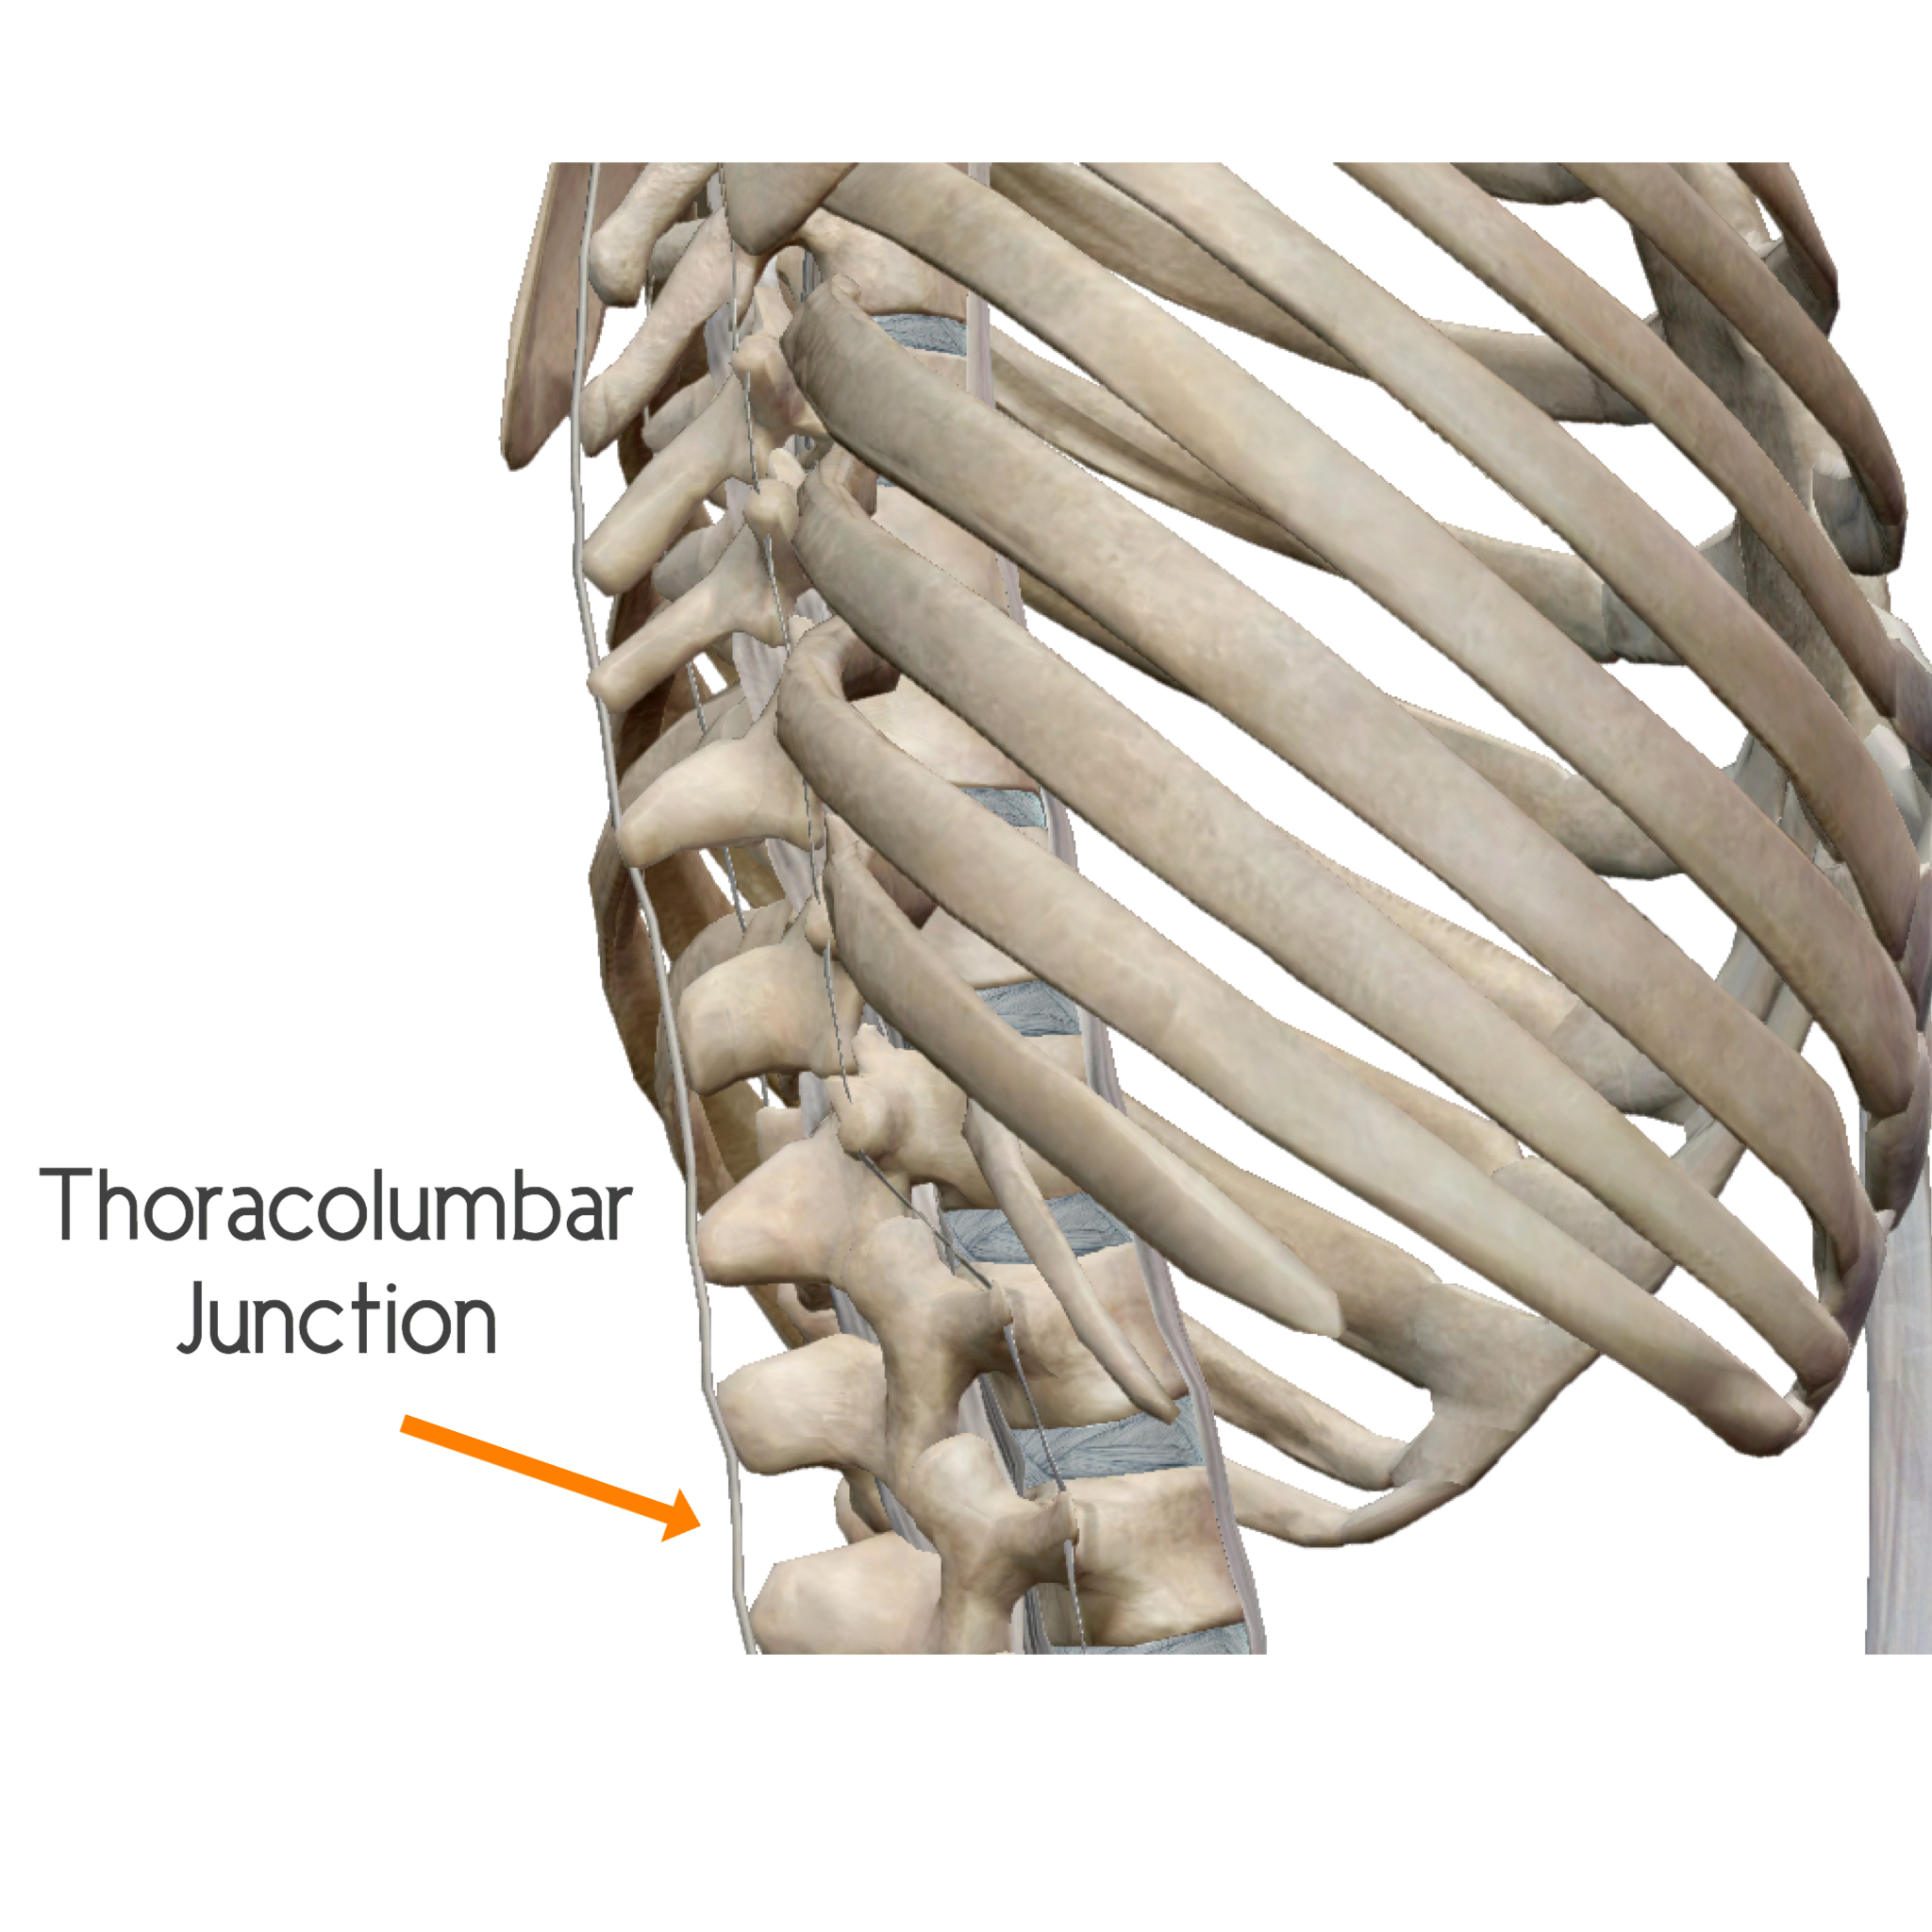 Thoracolumbar Junction is the space between the last thoracic vertebra and the first lumbar vertebra.